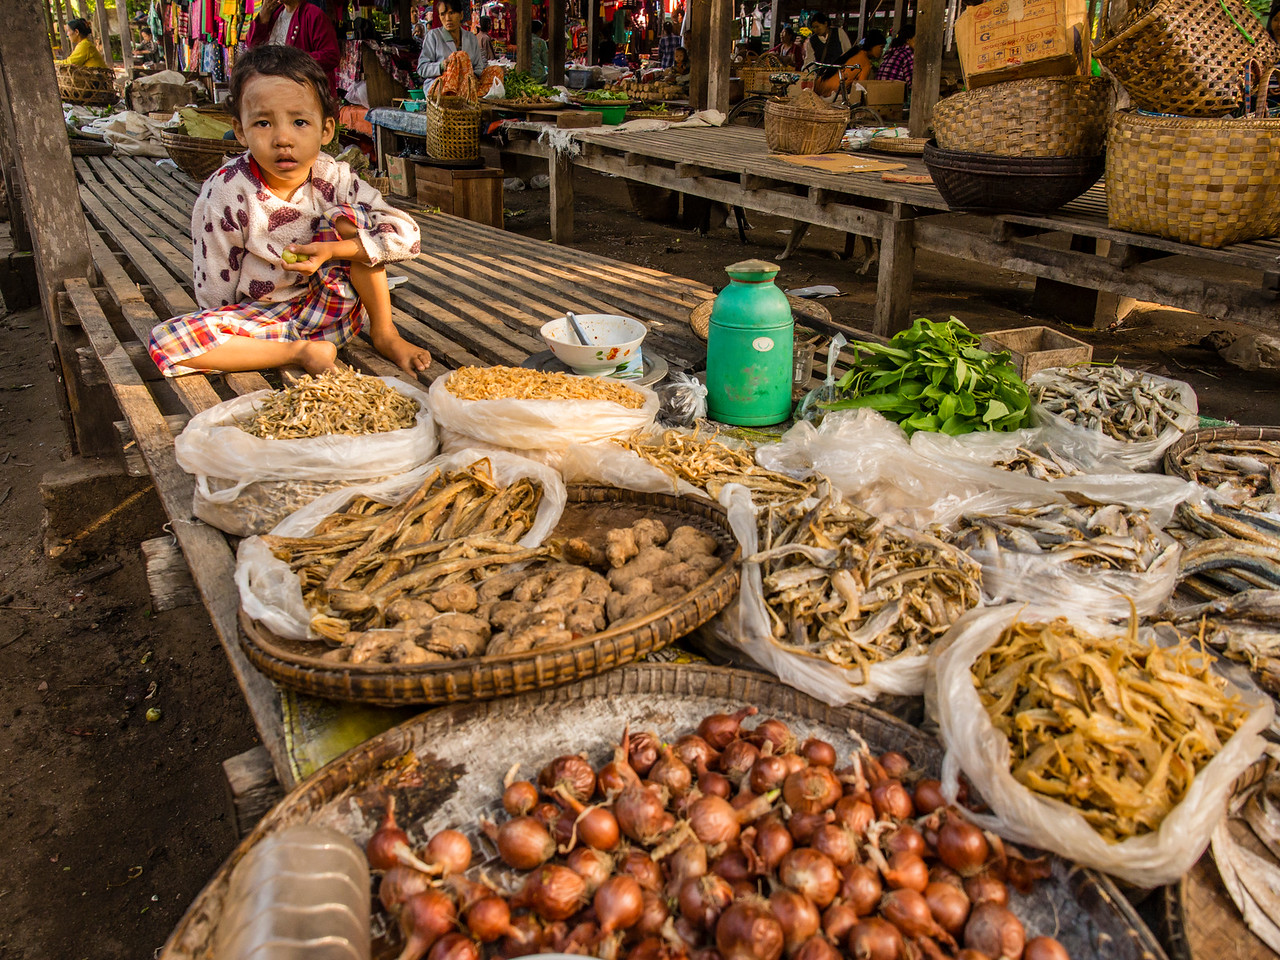 Kani morning market, Chindwin River, Myanmar